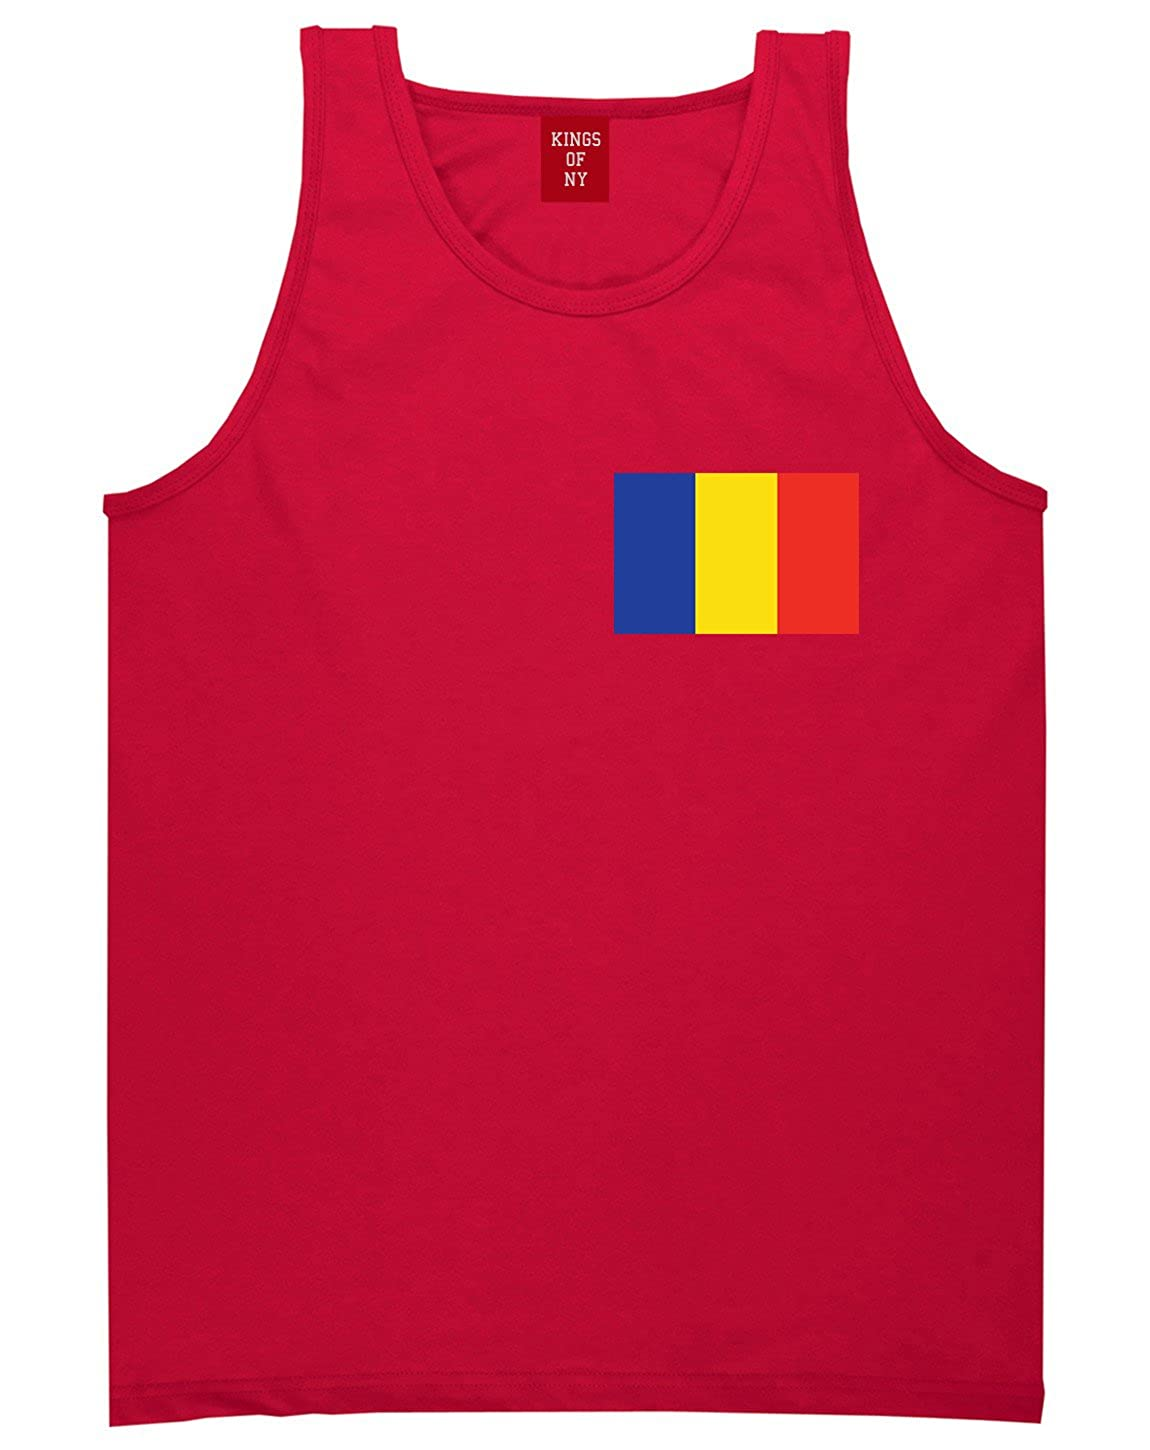 Chad Flag Country Chest Tank Top Shirt